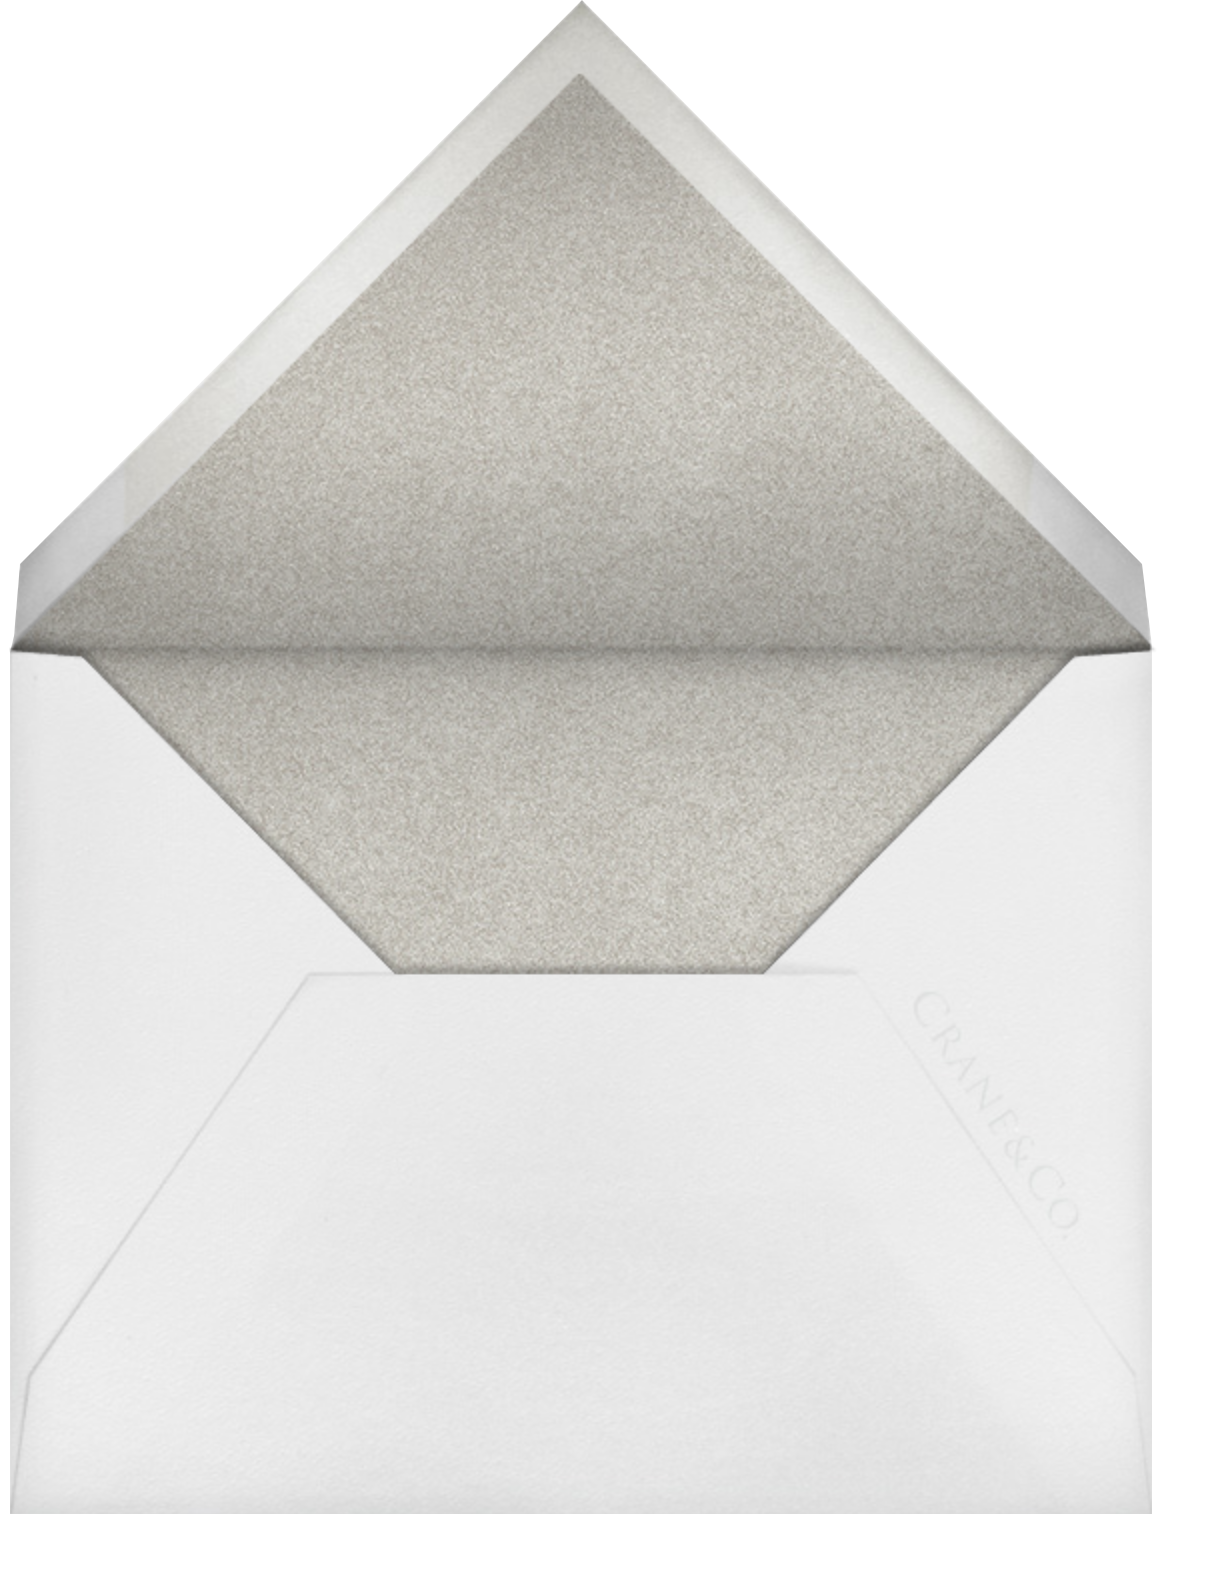 Gwendolyn I - Platinum - Paperless Post - All - envelope back